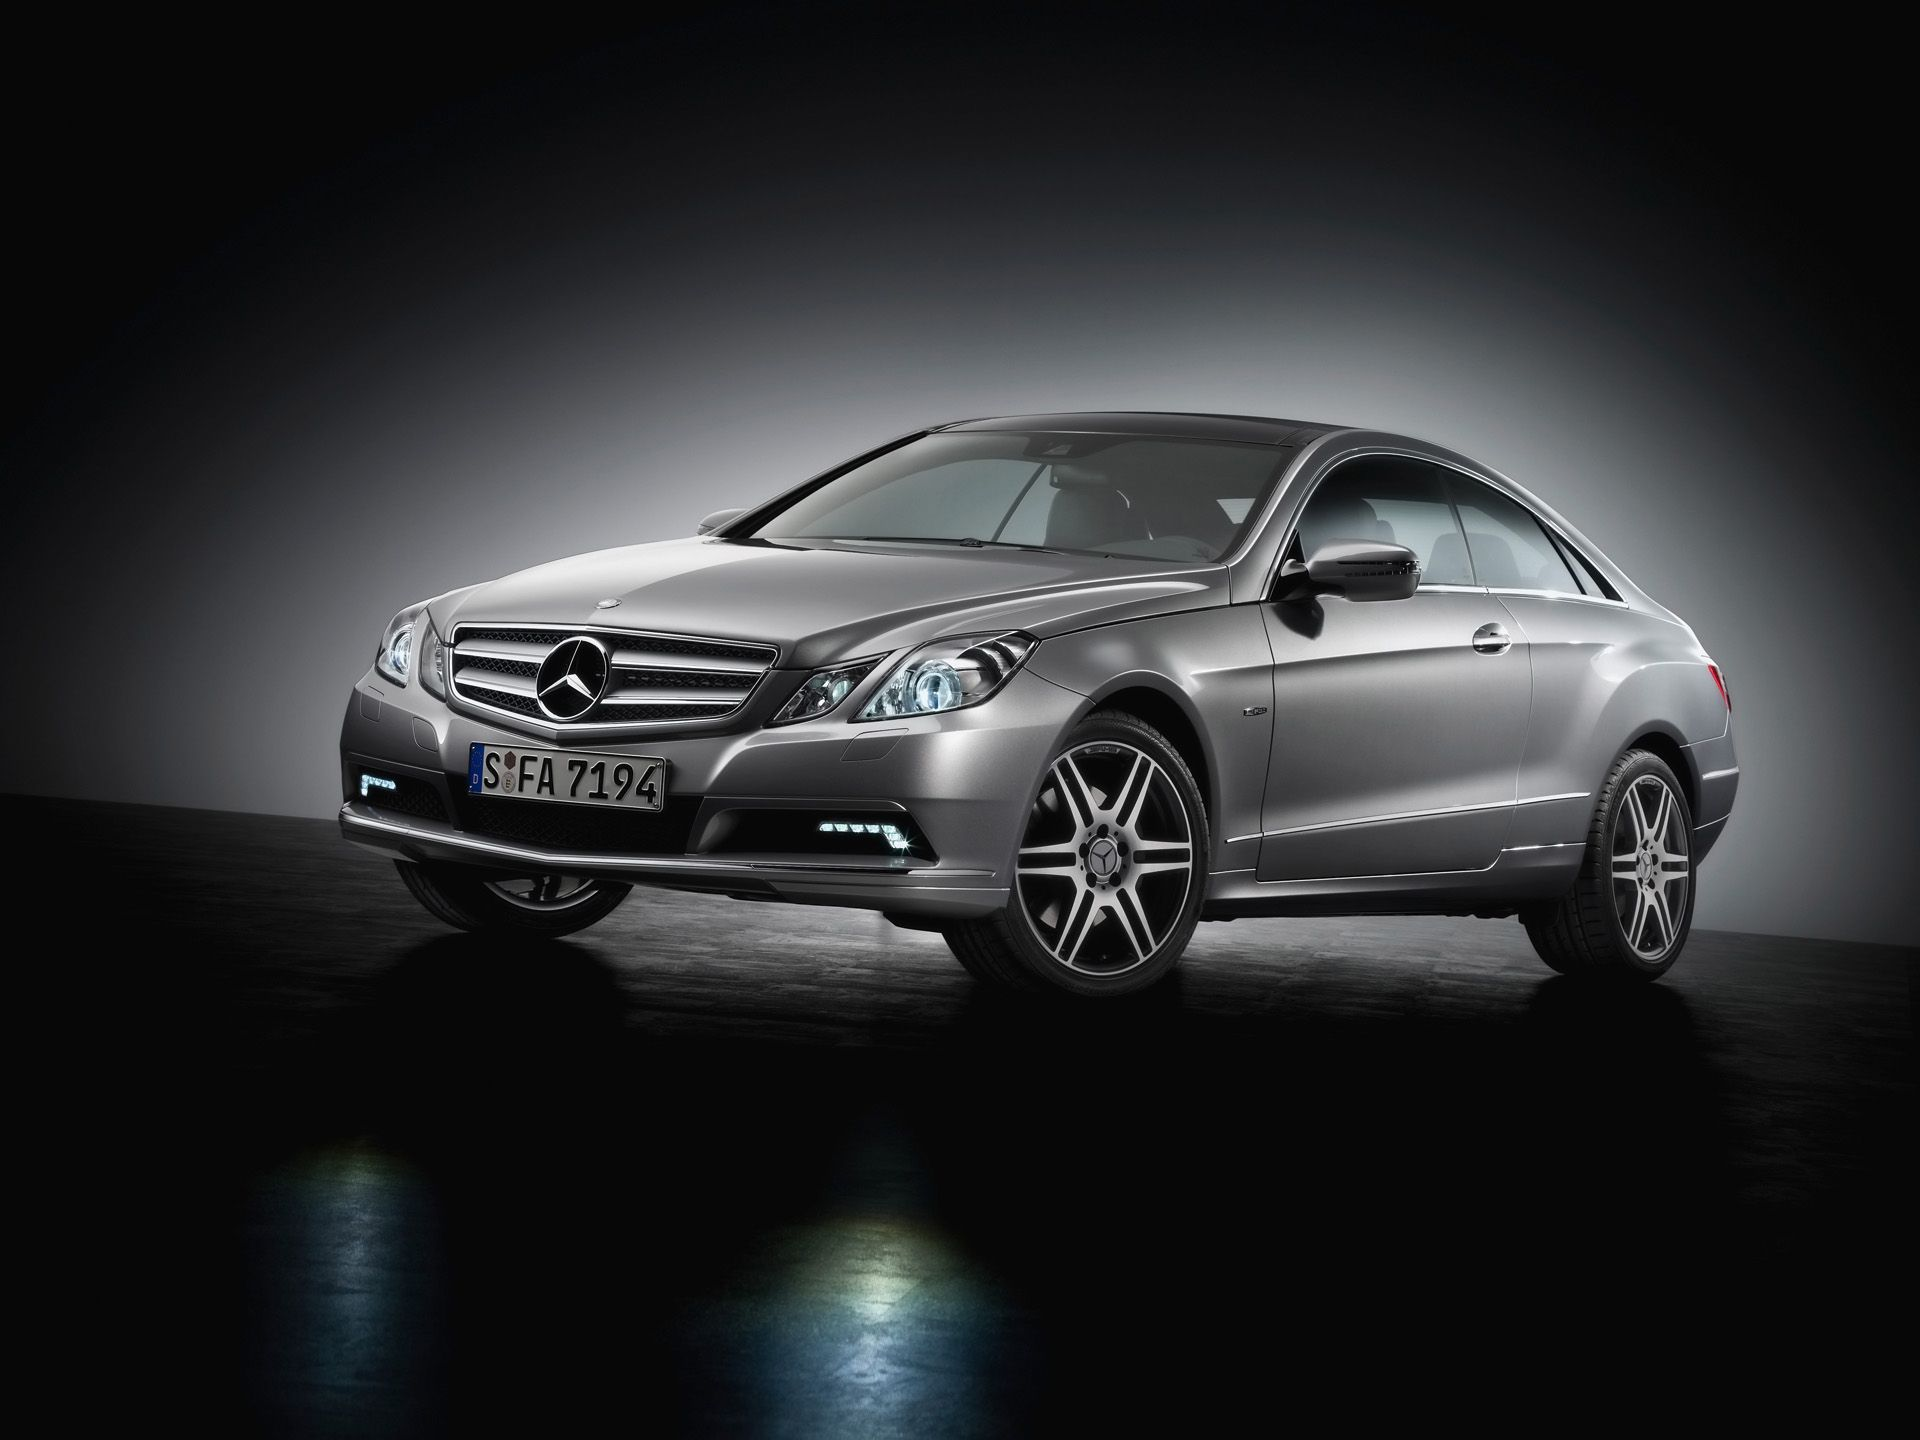 2009 Mercedes Benz E Class Coupe Front And Side Studio With